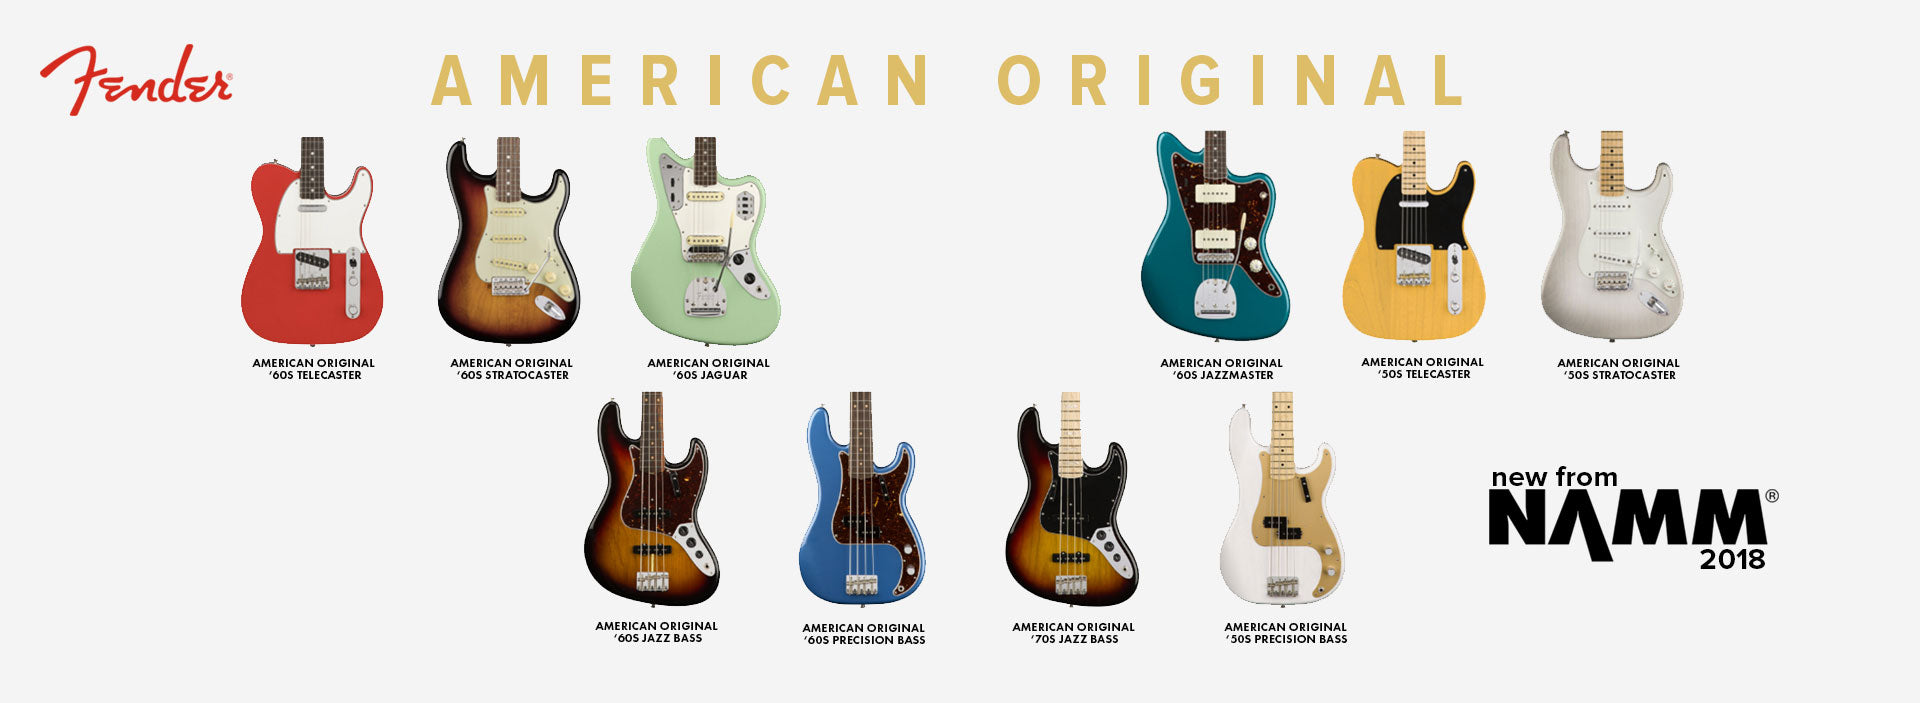 New Fender American Original Series